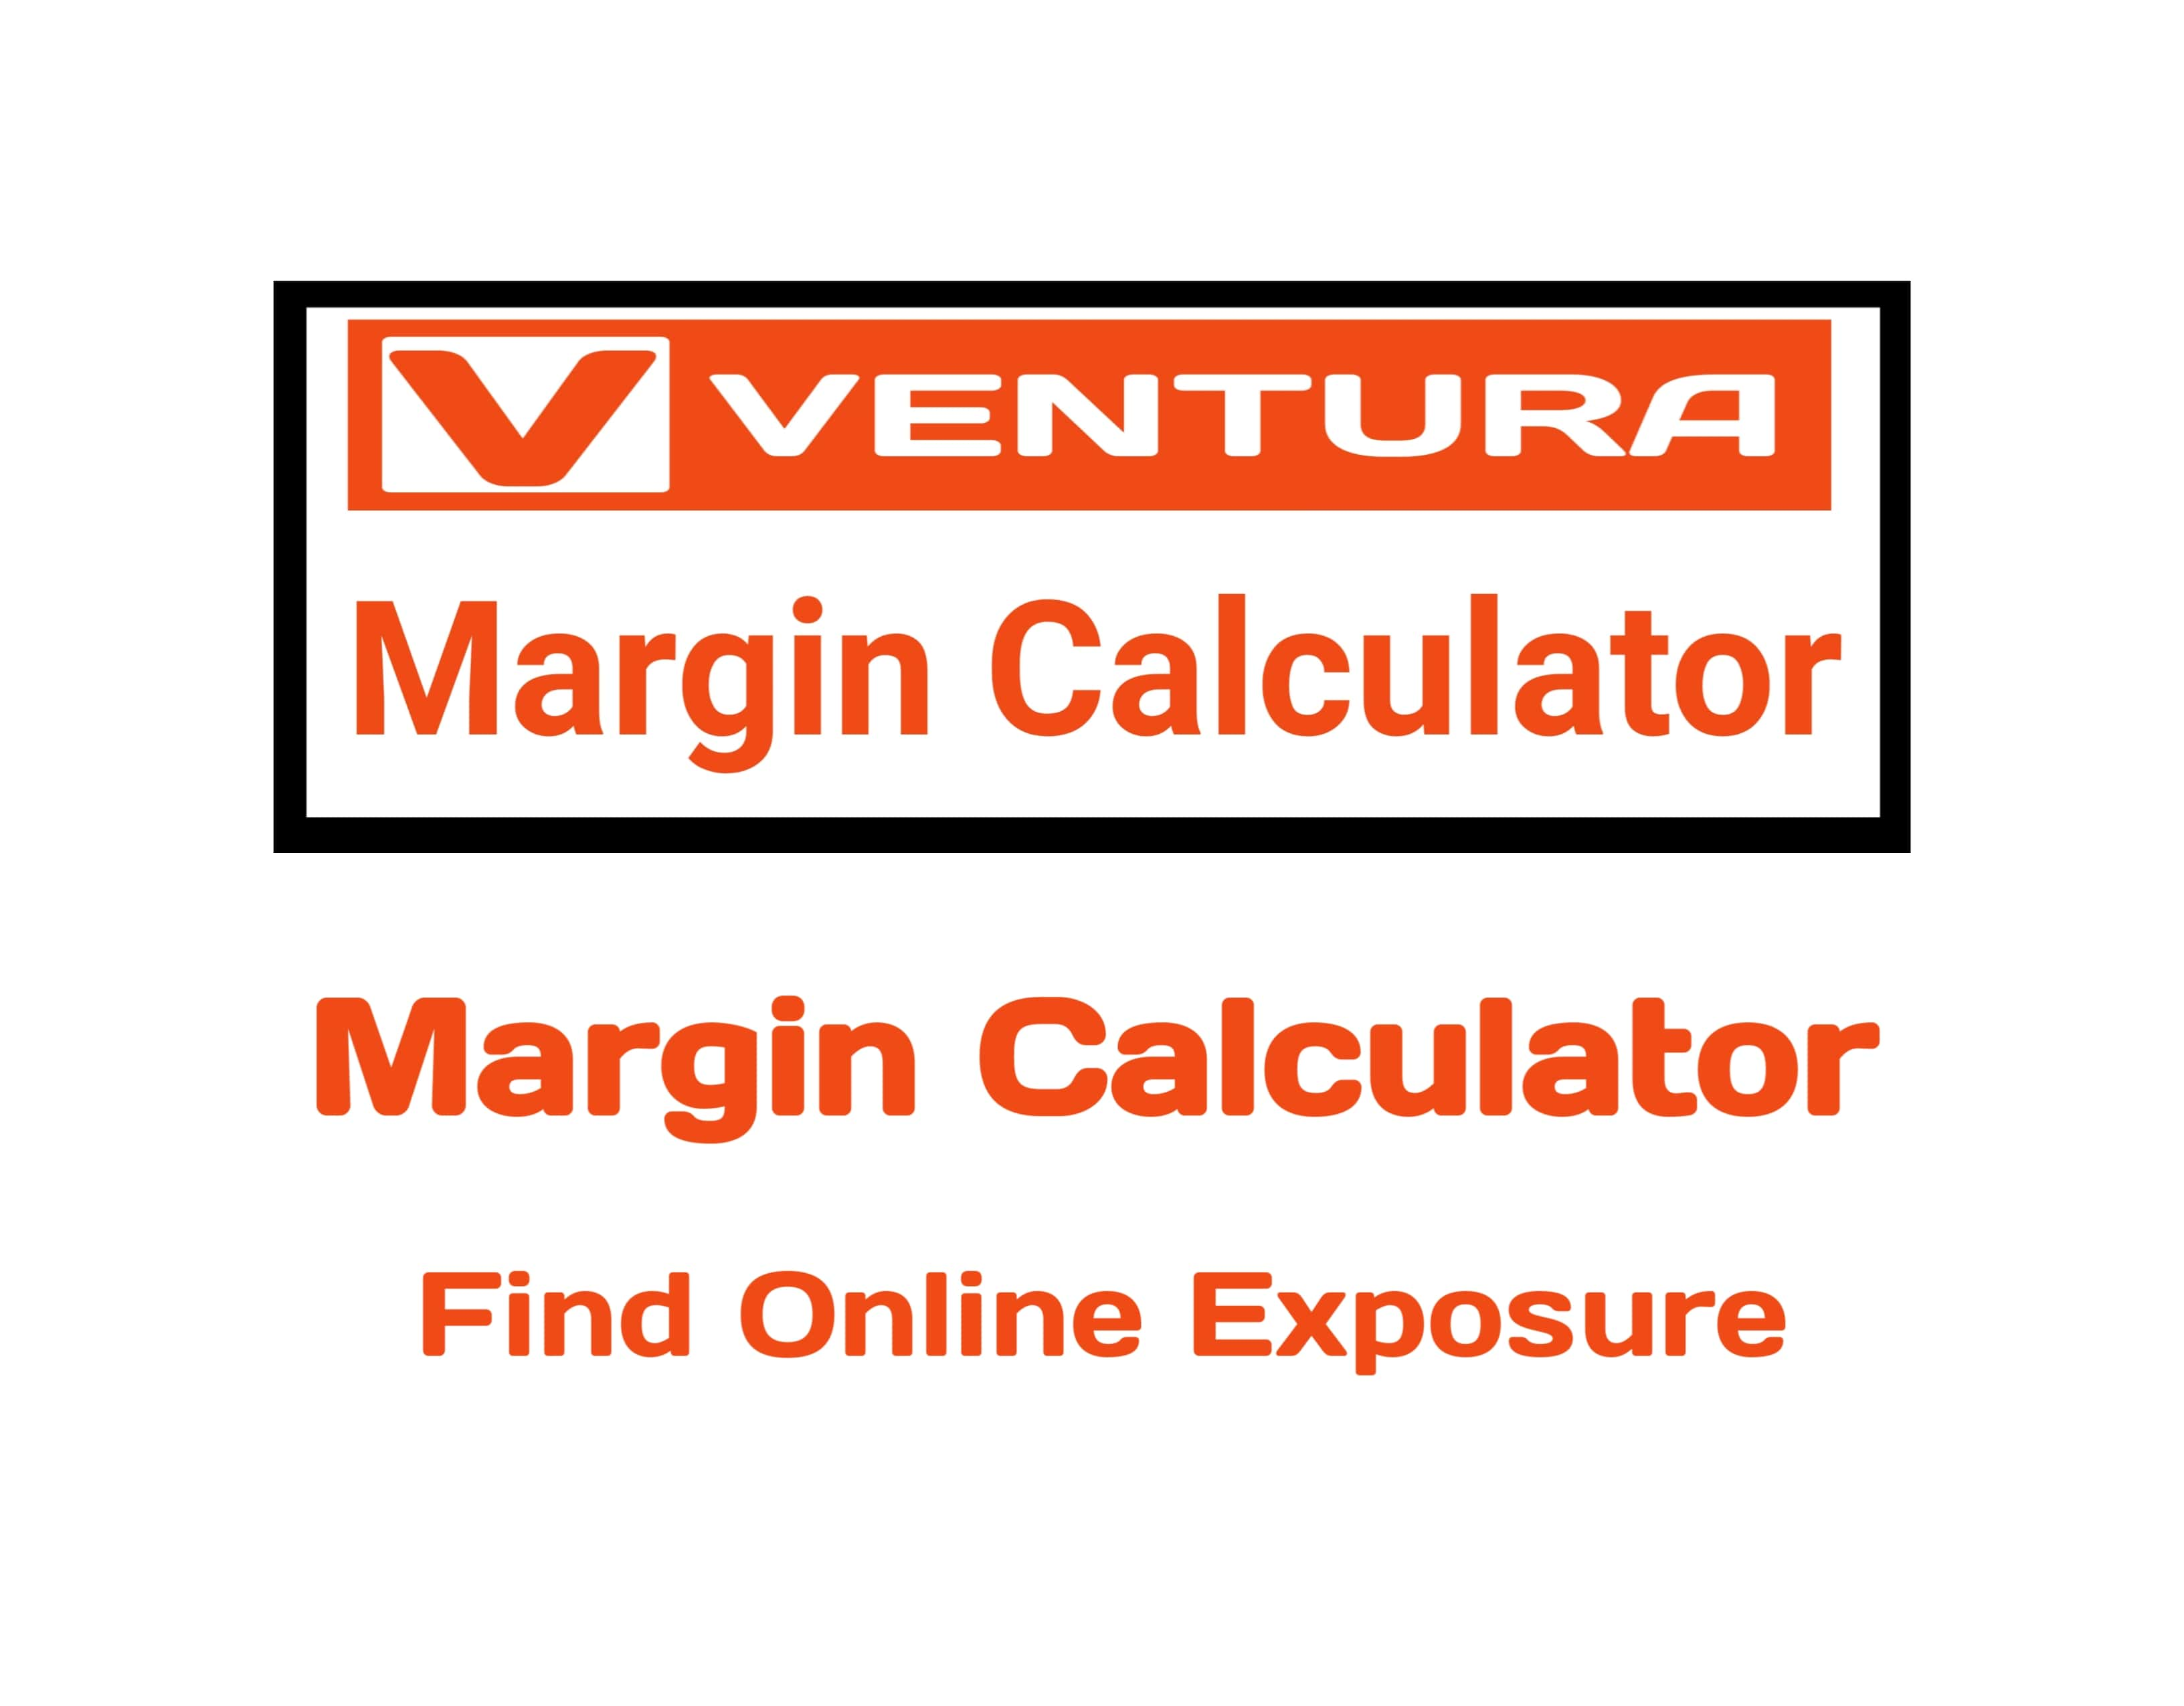 Ventura Capital Margin Calculator